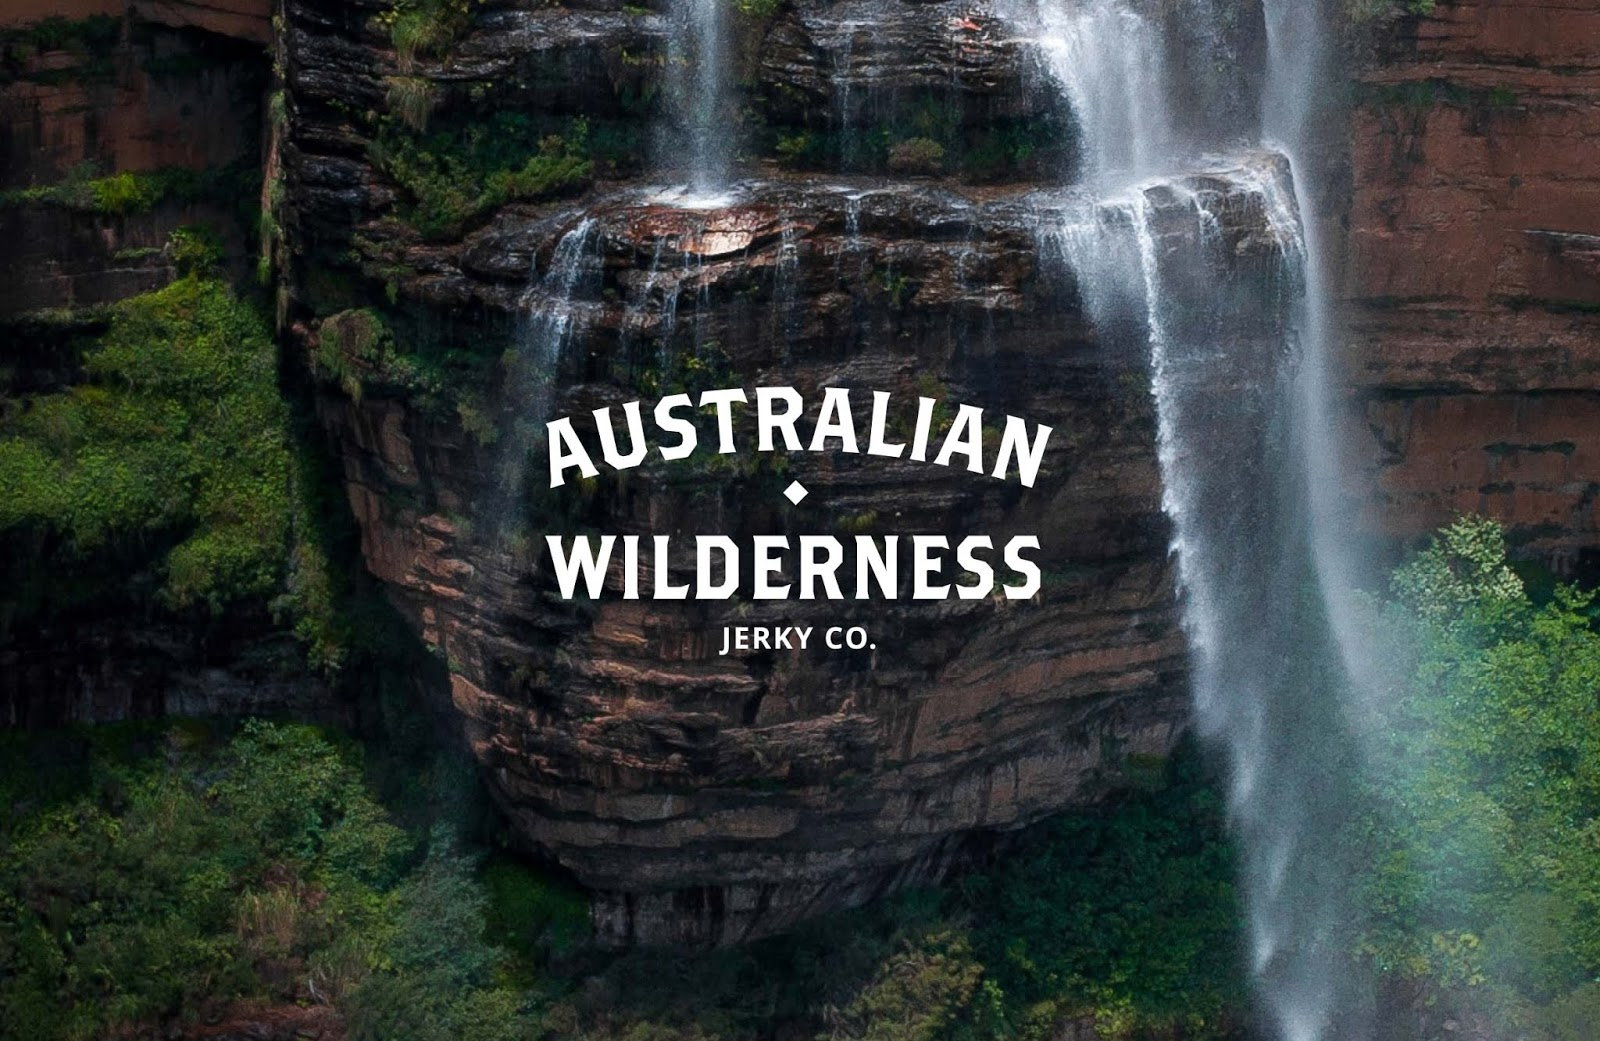 Australian Wilderness Jerky Co  | Penang Web and Graphic